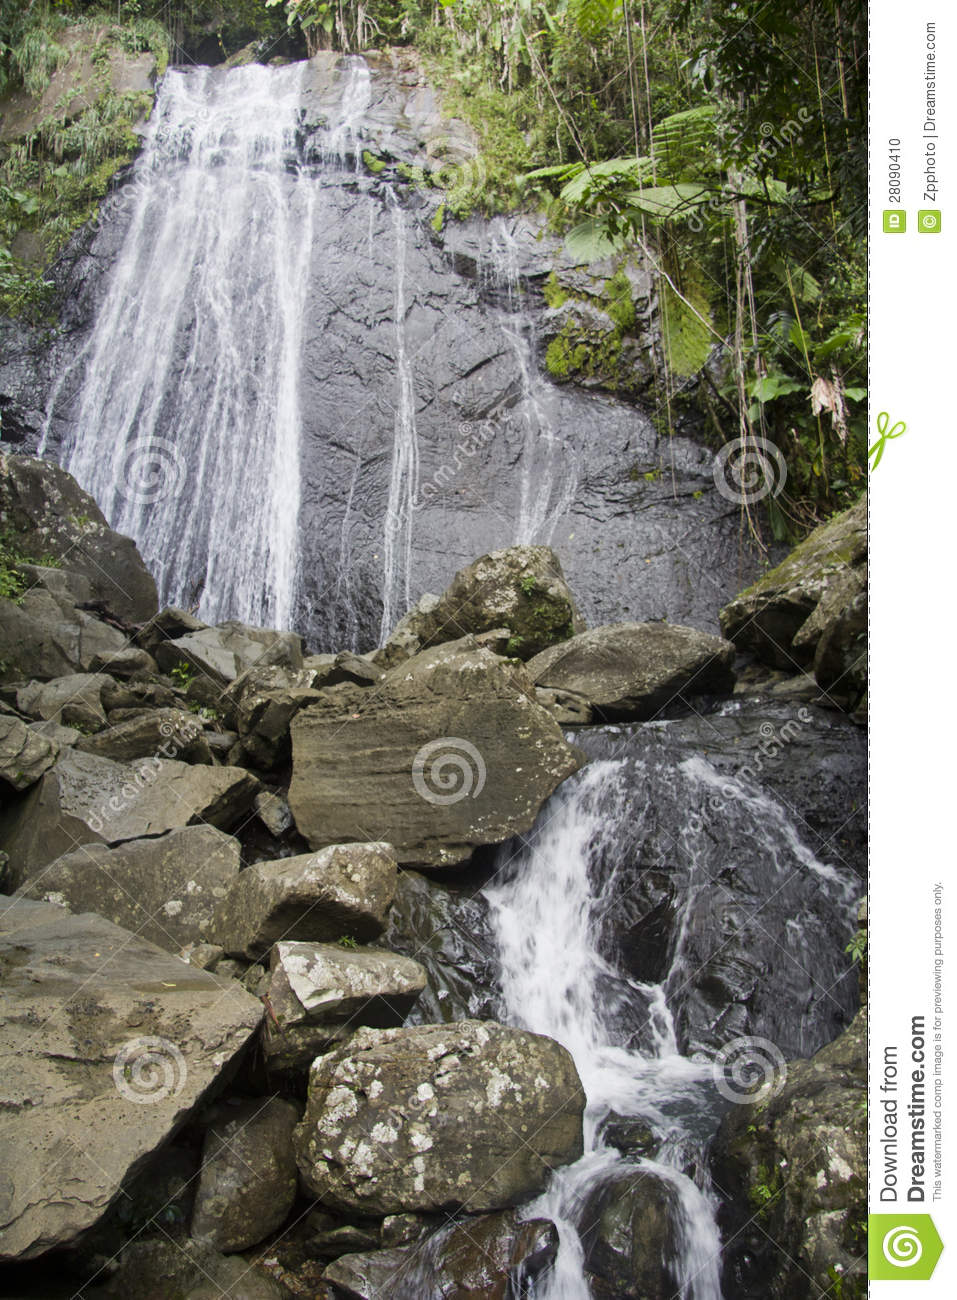 Baño Grande Pool Puerto Rico:More similar stock images of ` Waterfall Puerto Rico `